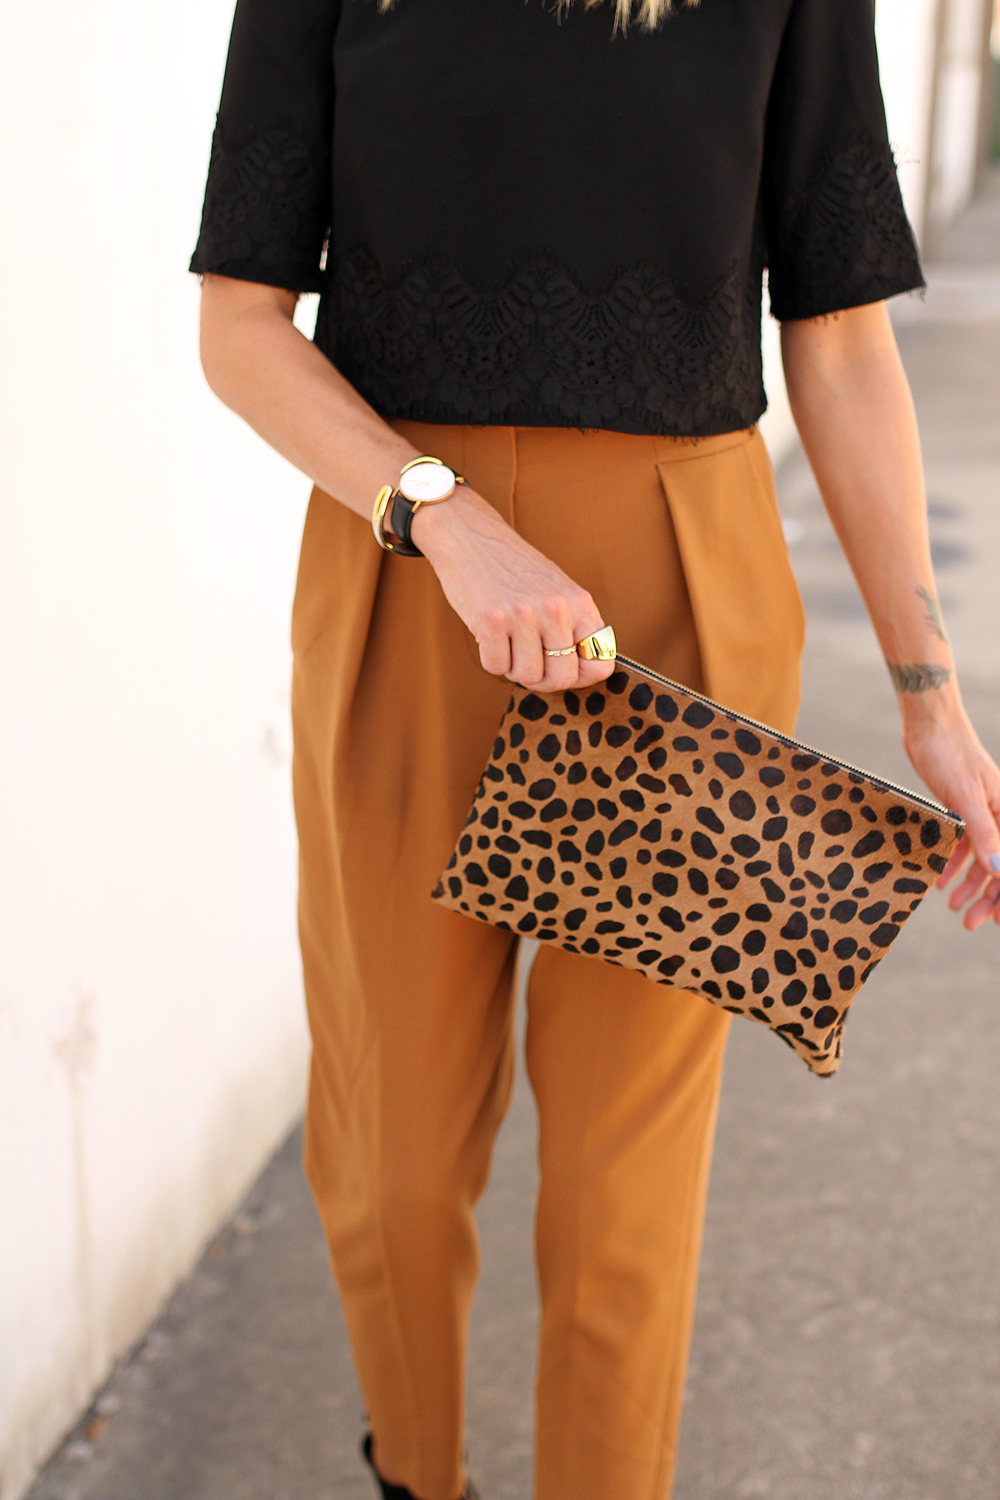 fashion-jackson-clare-v-leopard-clutch